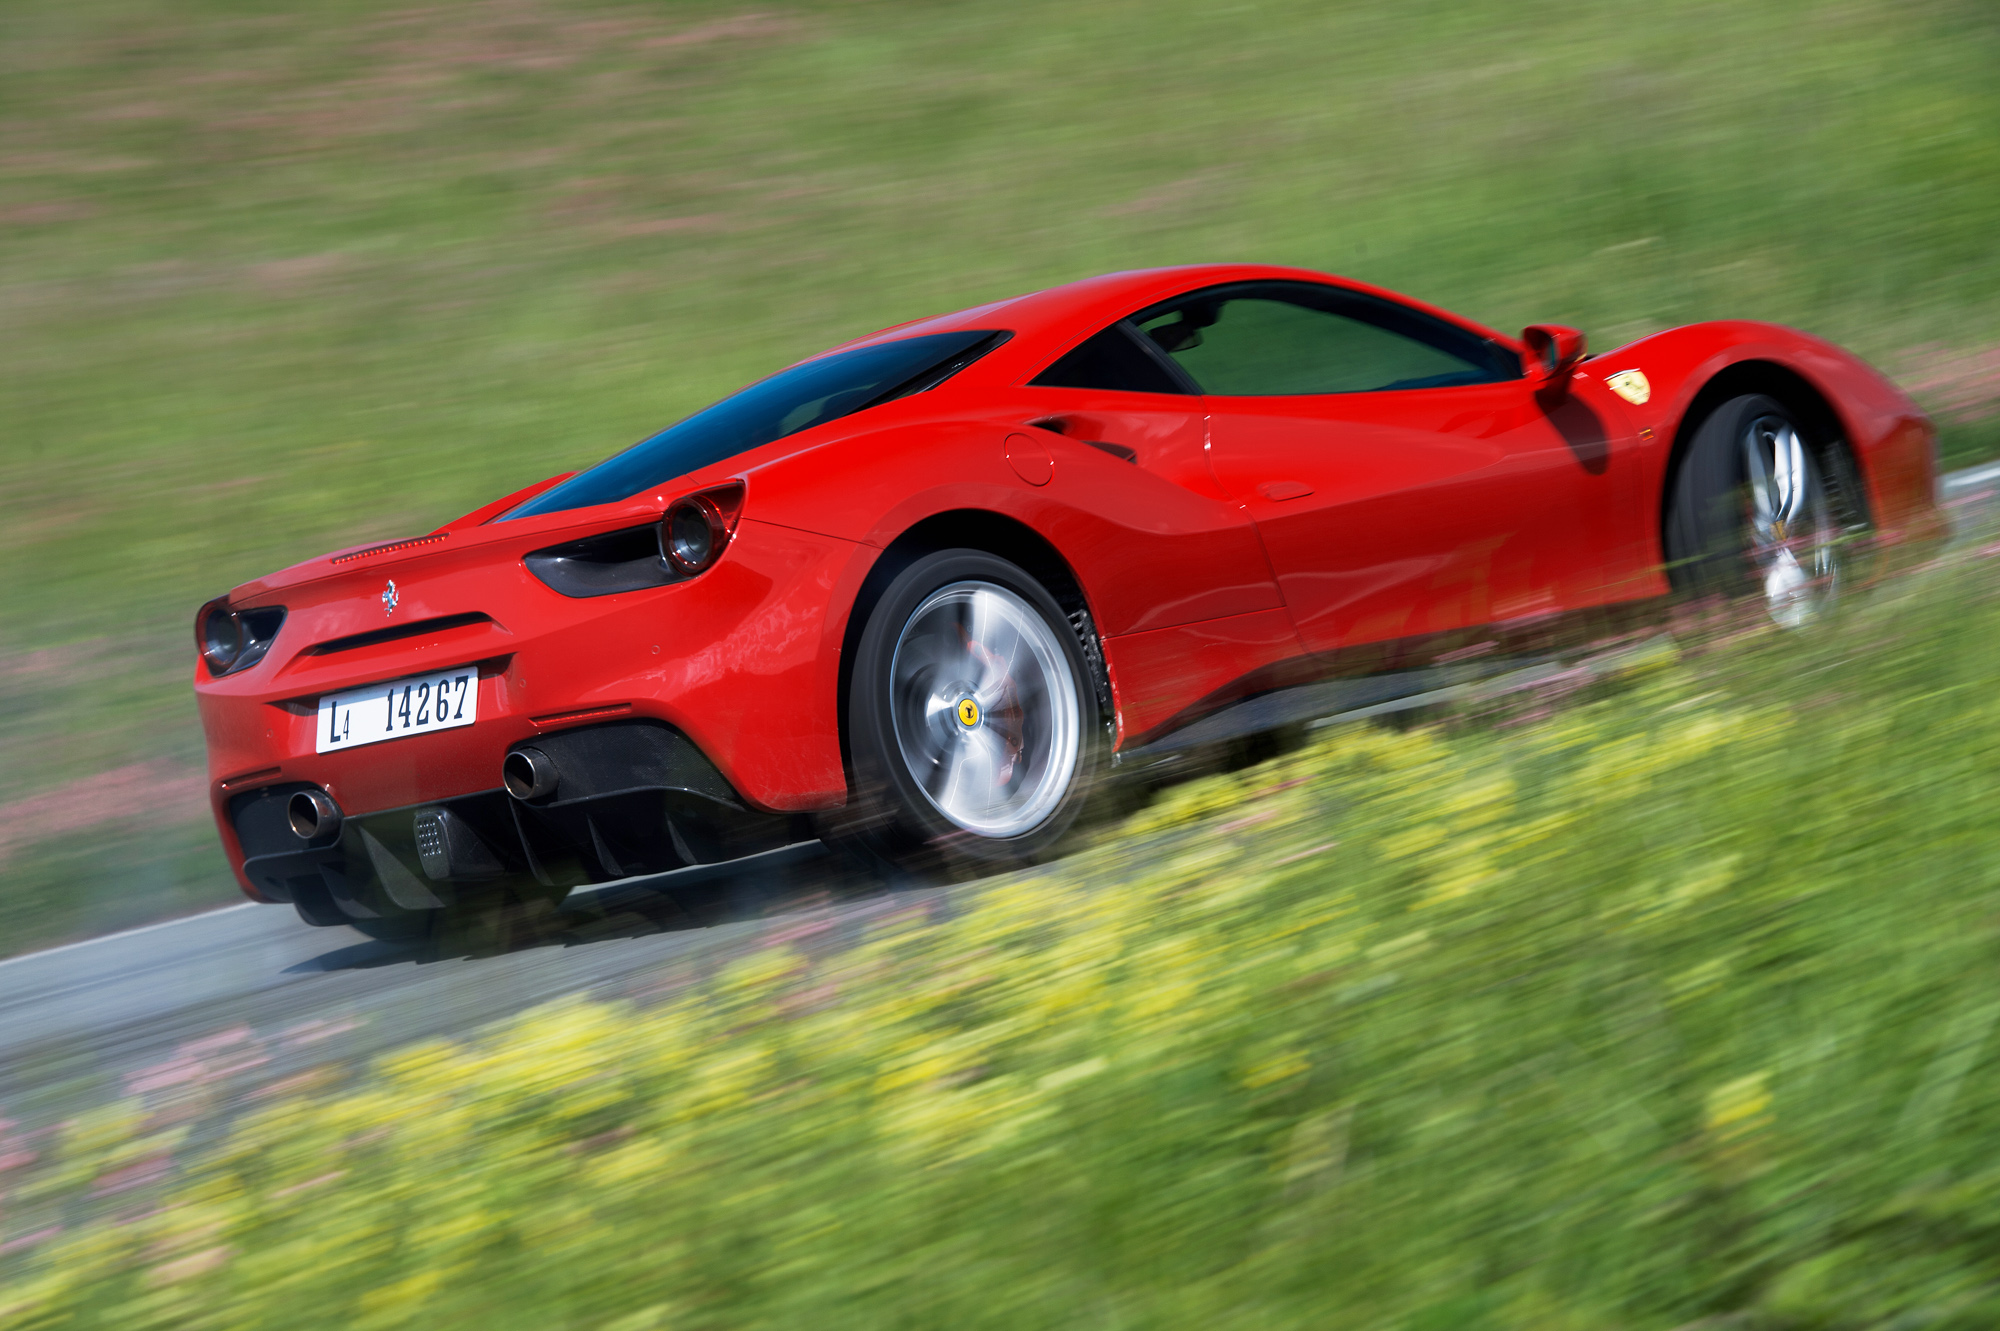 Ferrari 488 Gtb Review Prices Specs And 0 60 Time Evo